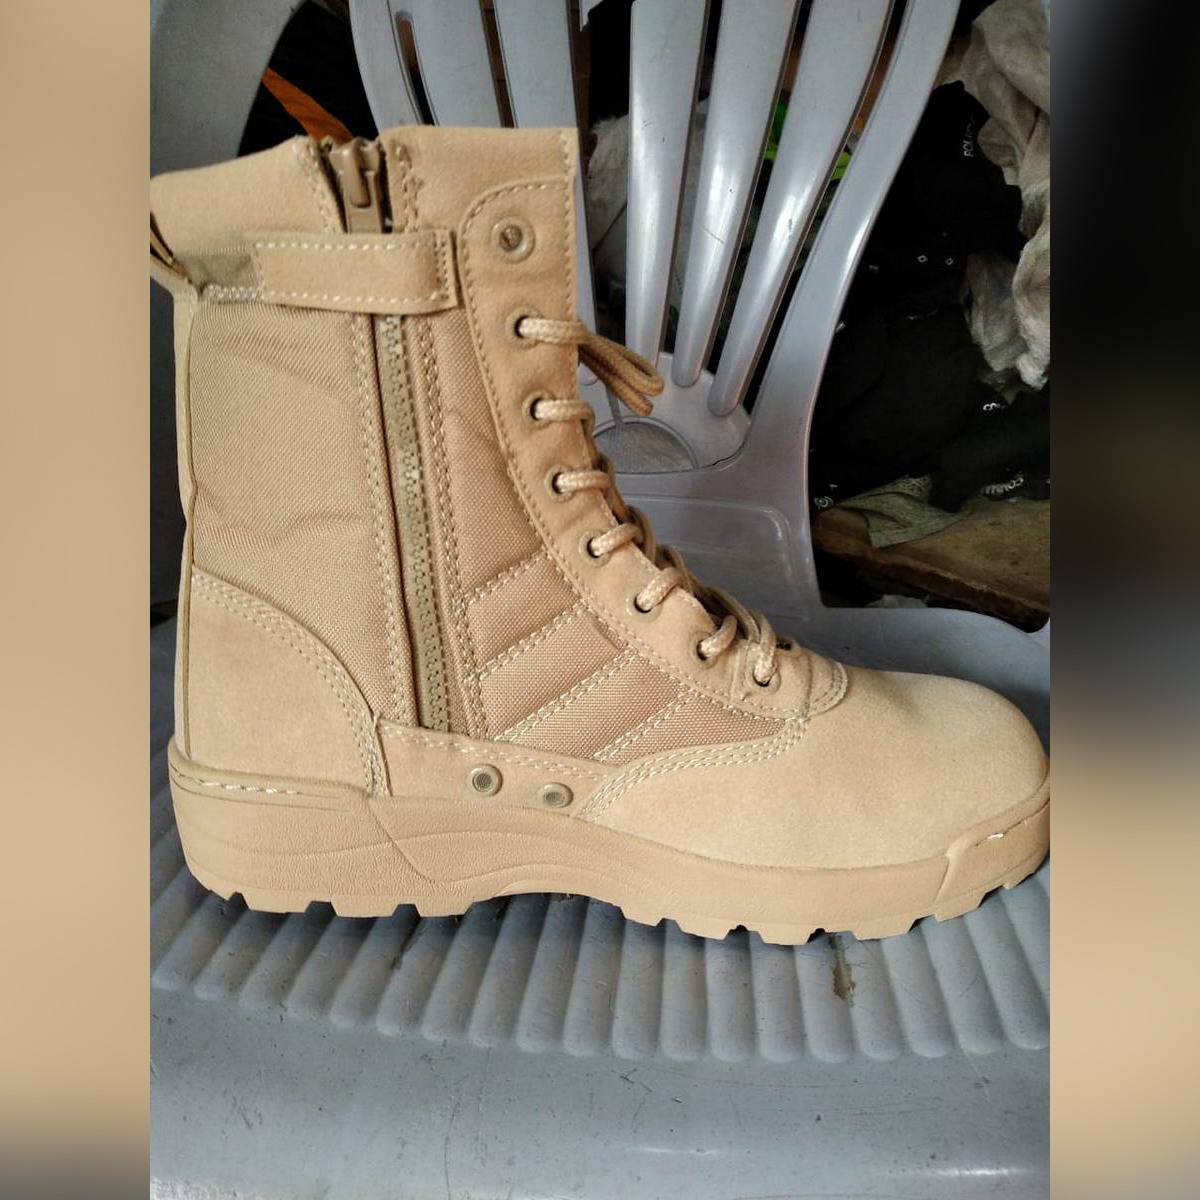 SWAT Hiking Boots